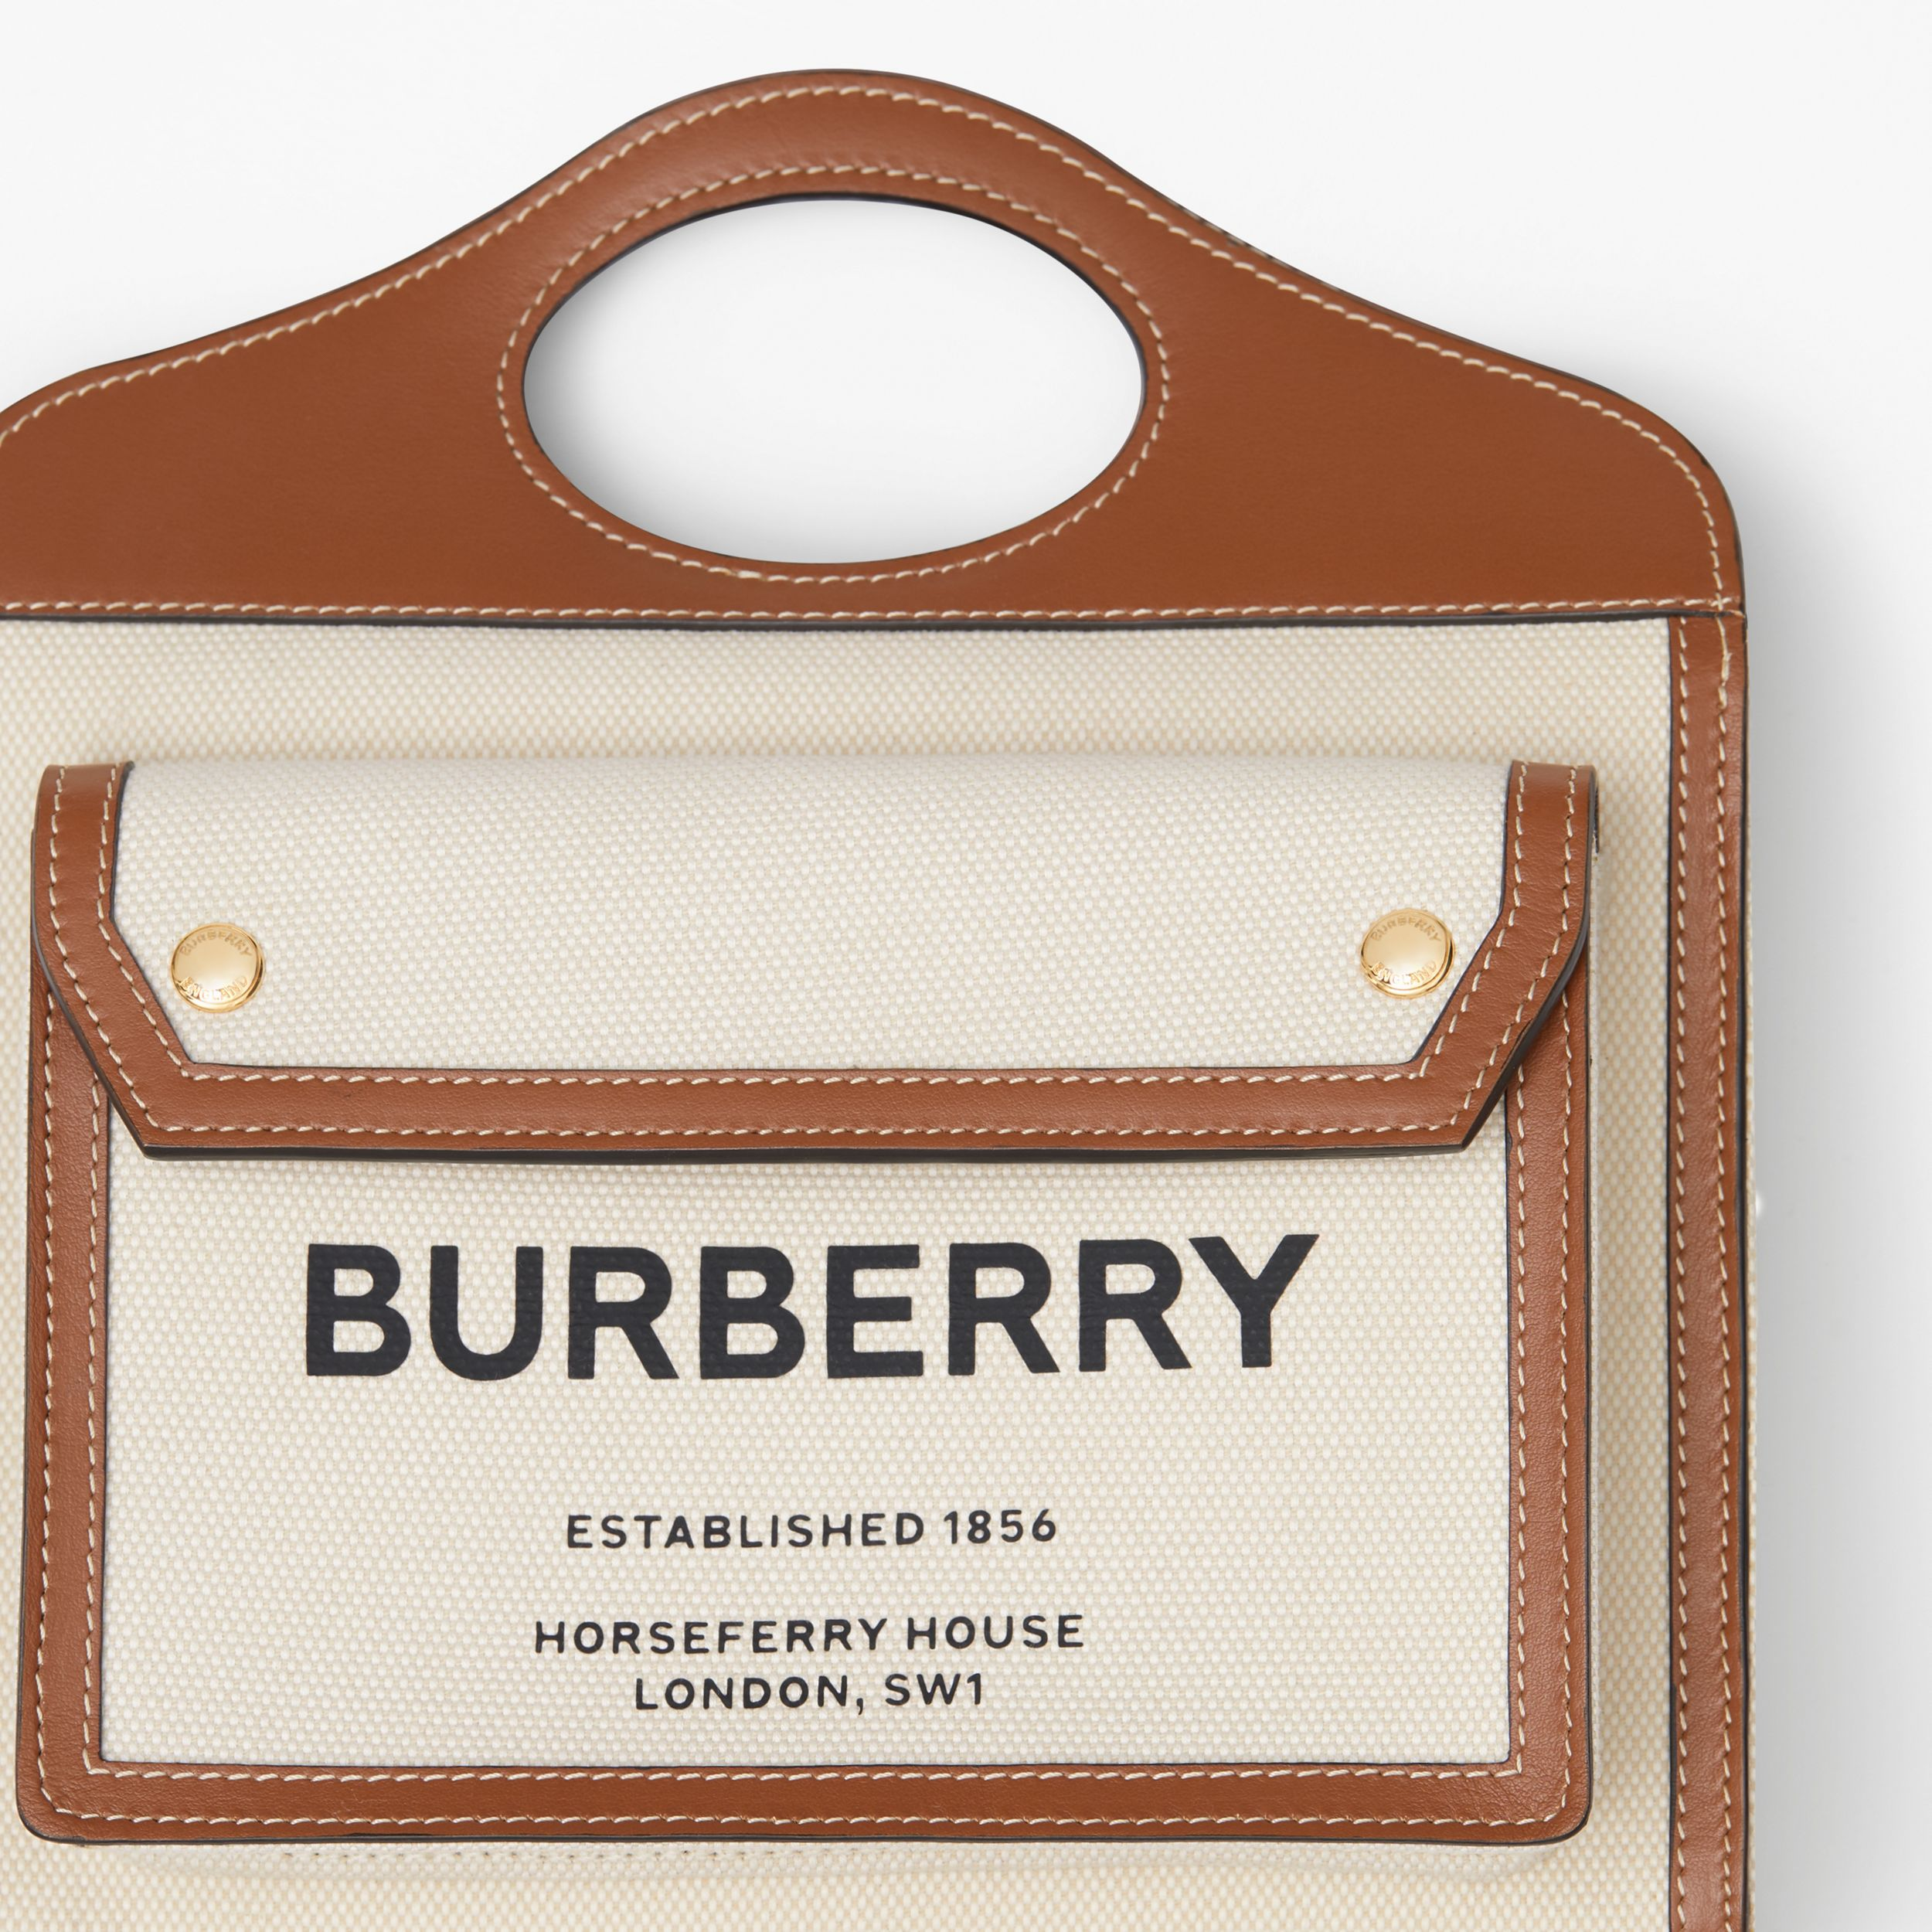 Mini Two-tone Canvas and Leather Pocket Bag in Natural/malt Brown - Women | Burberry Canada - 2